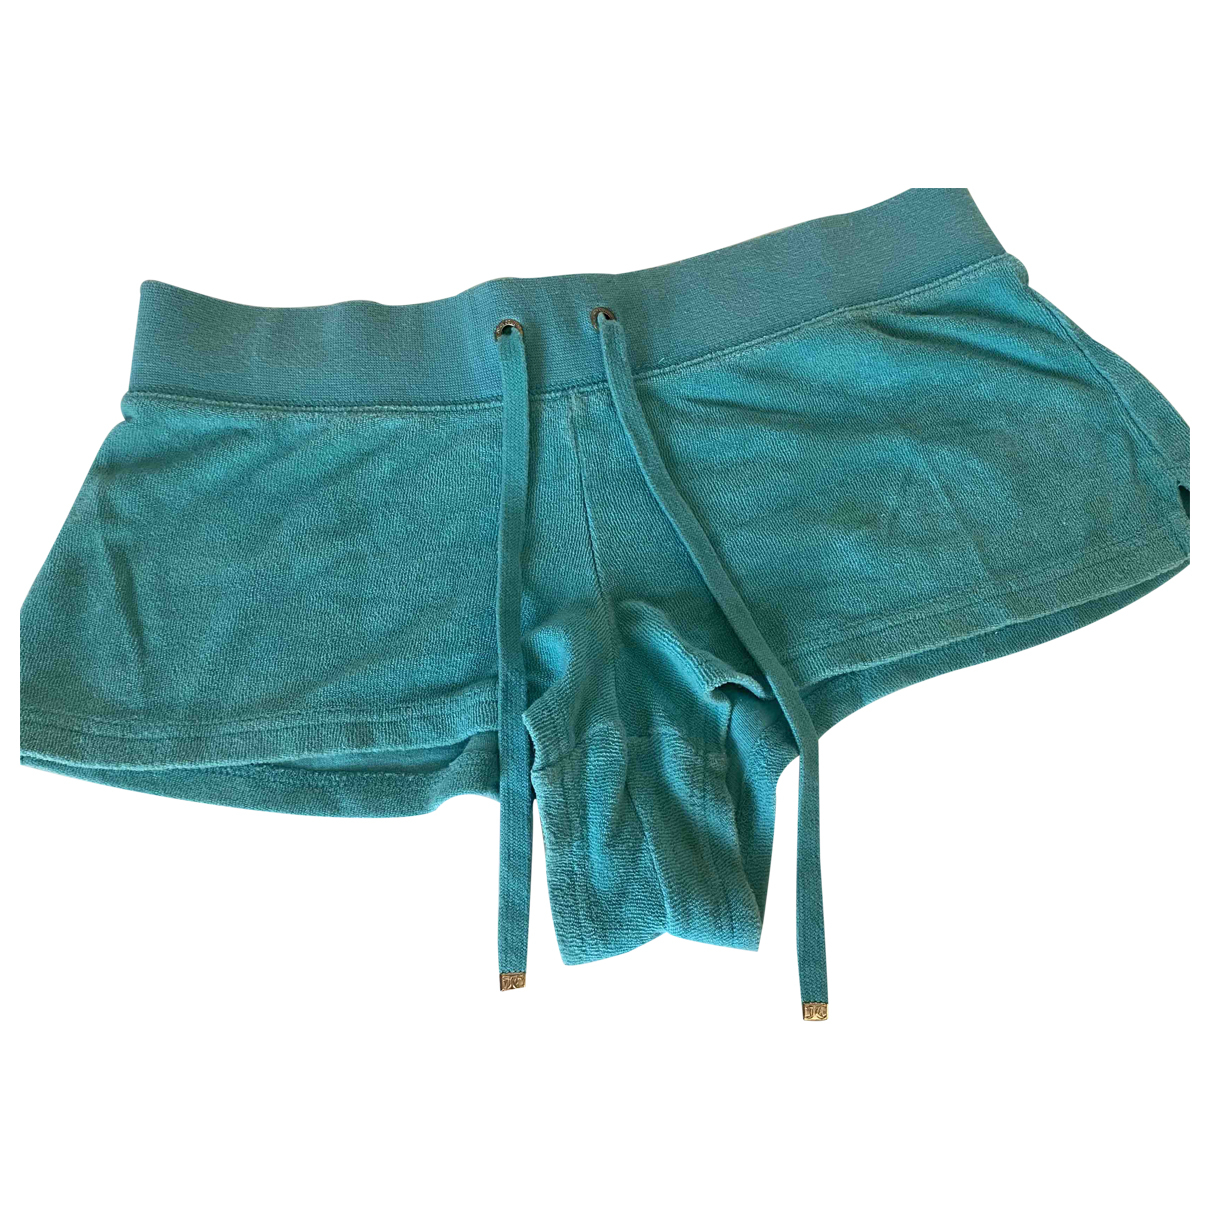 Juicy Couture \N Green Cotton Shorts for Women XS International